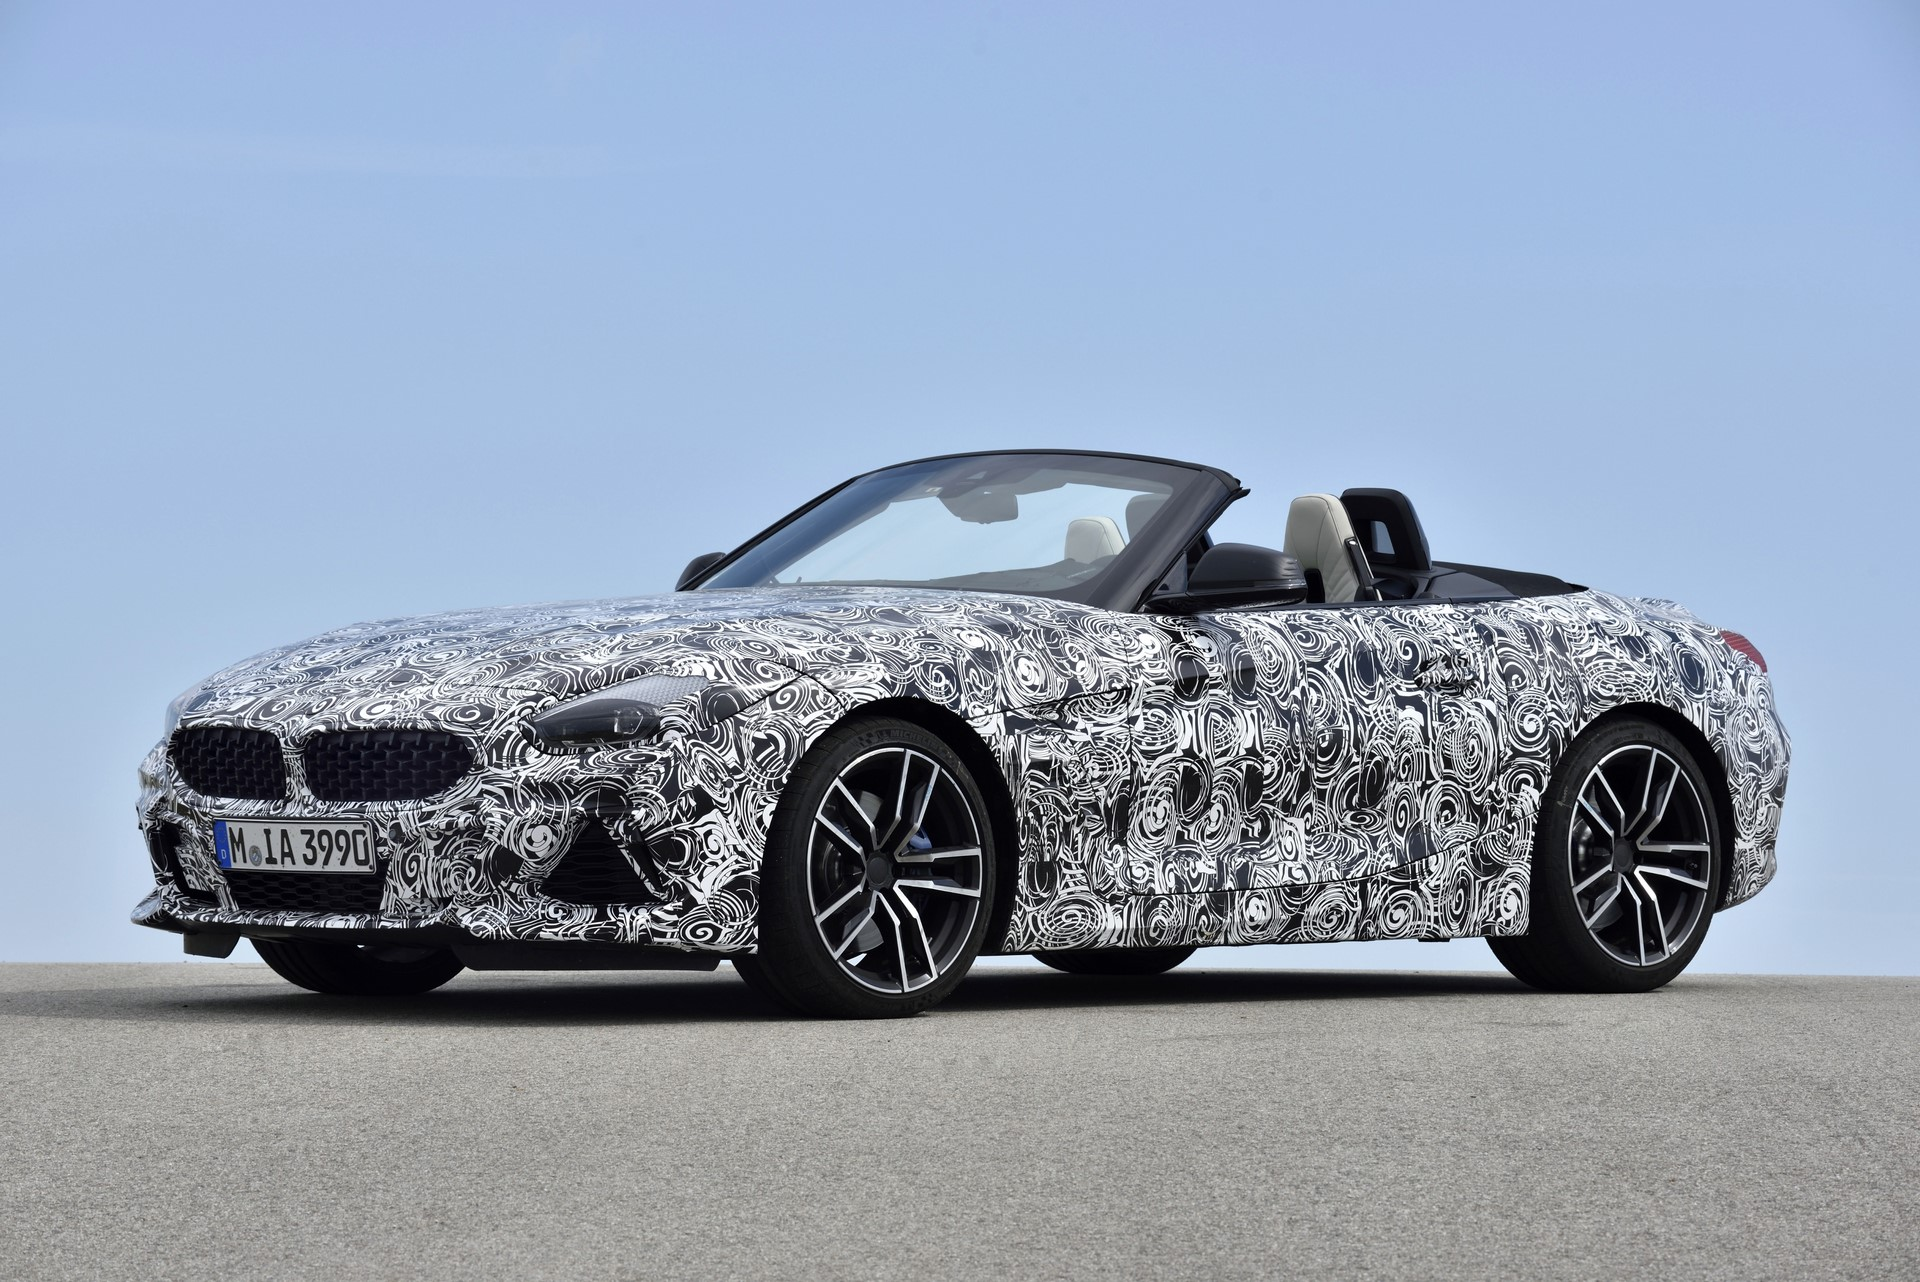 BMW Z4 M40i 2019 official spy photos (41)